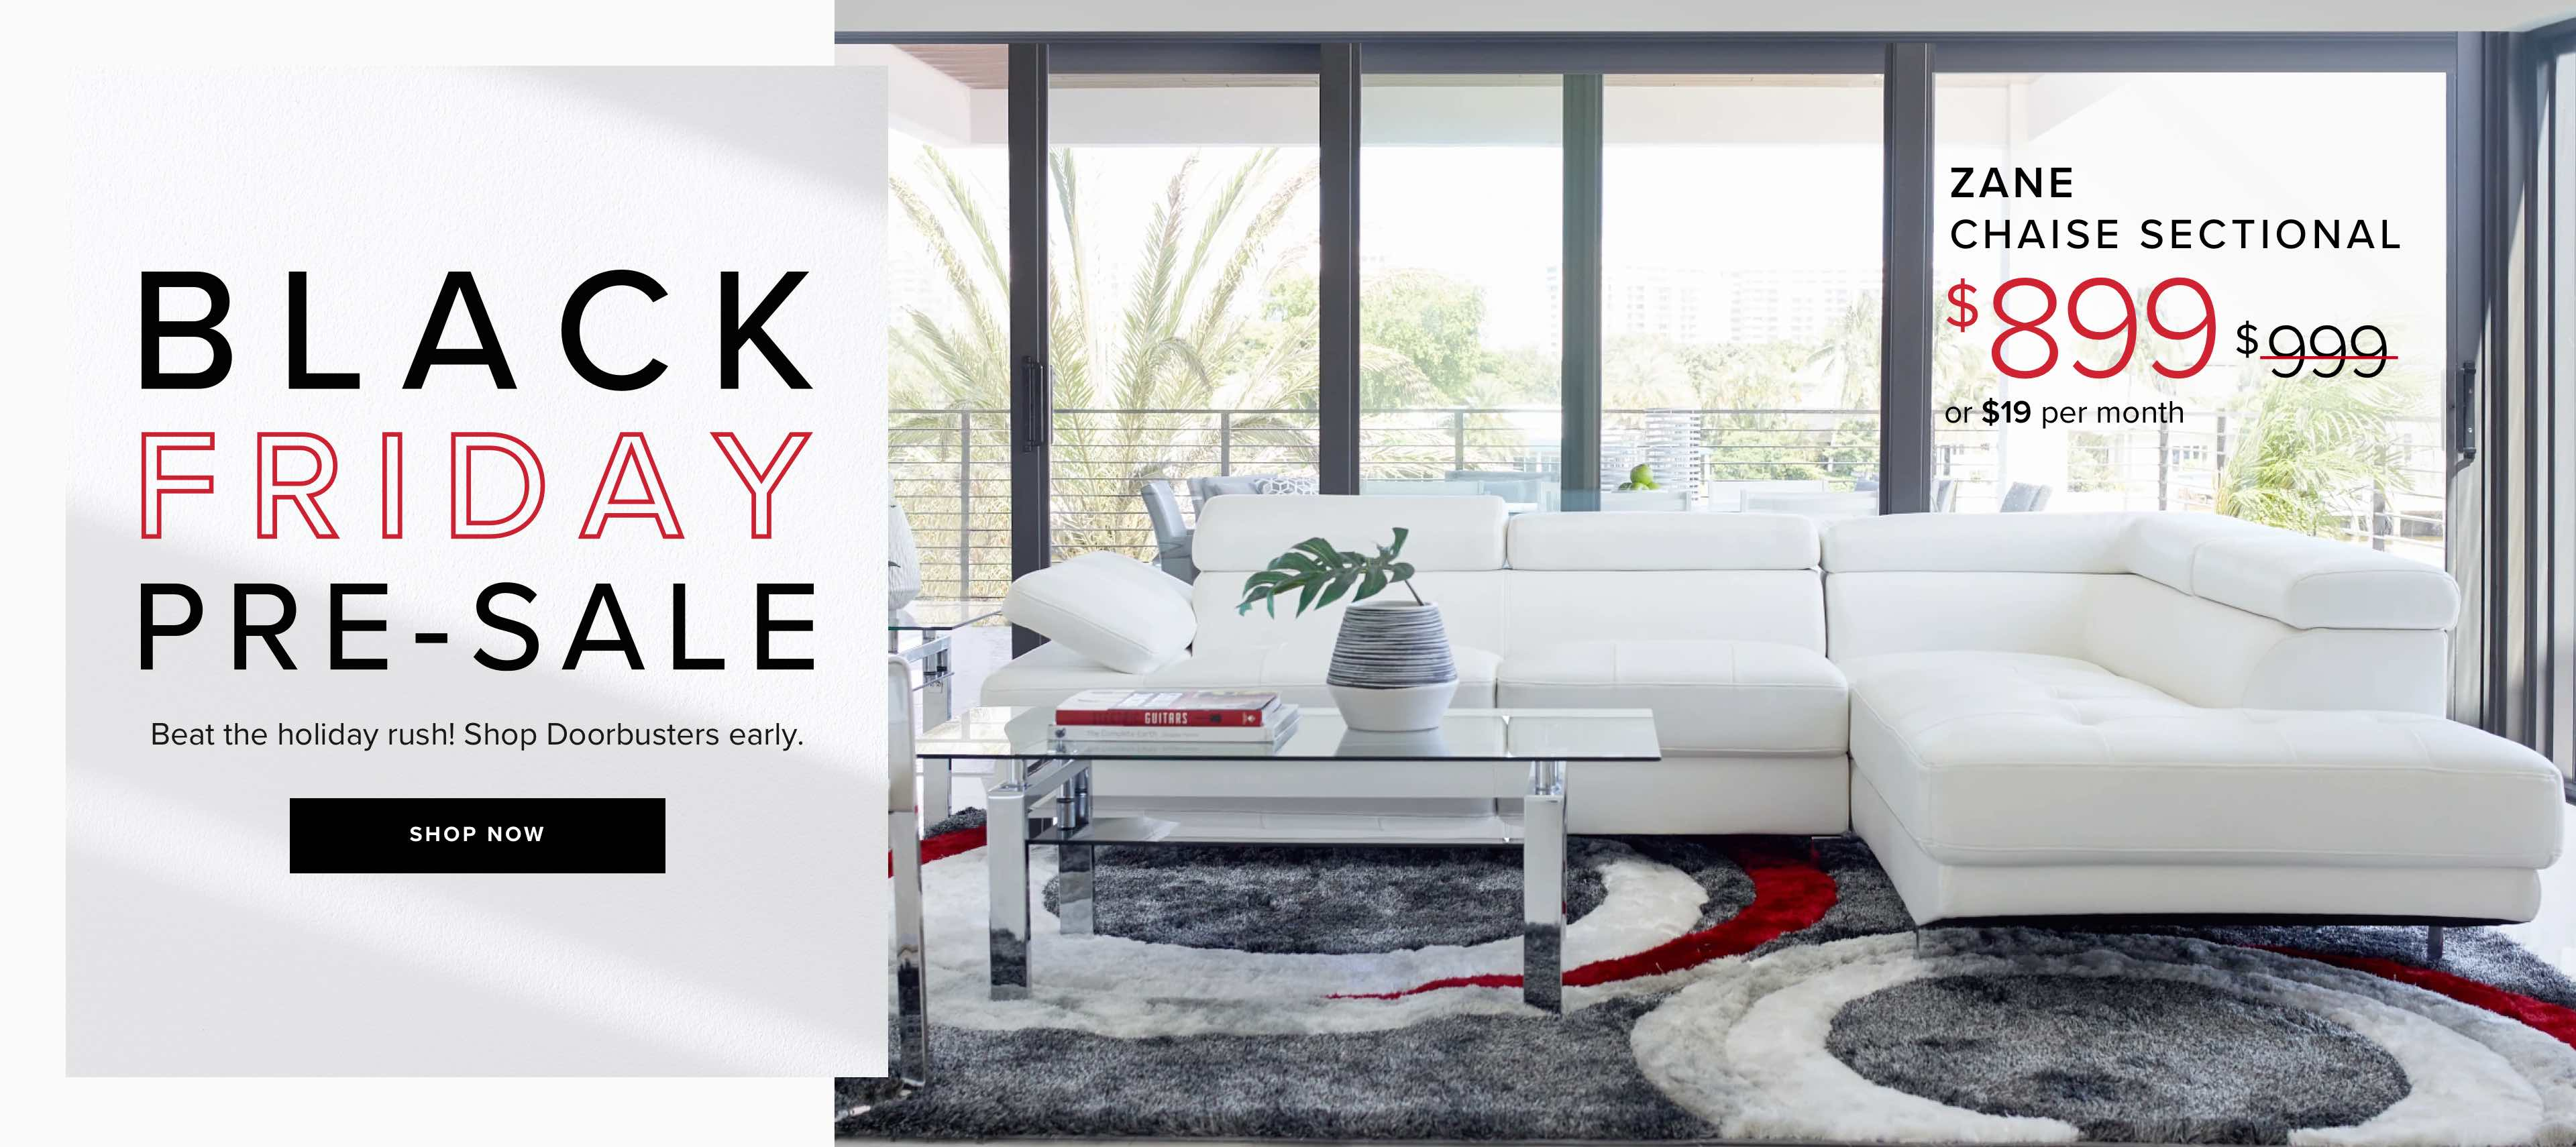 Black Friday Pre-sale. Beat the holiday rush! Shop doorbusters early. Click to shop. Zane sectional, was $999, now $899 or $19 per month.